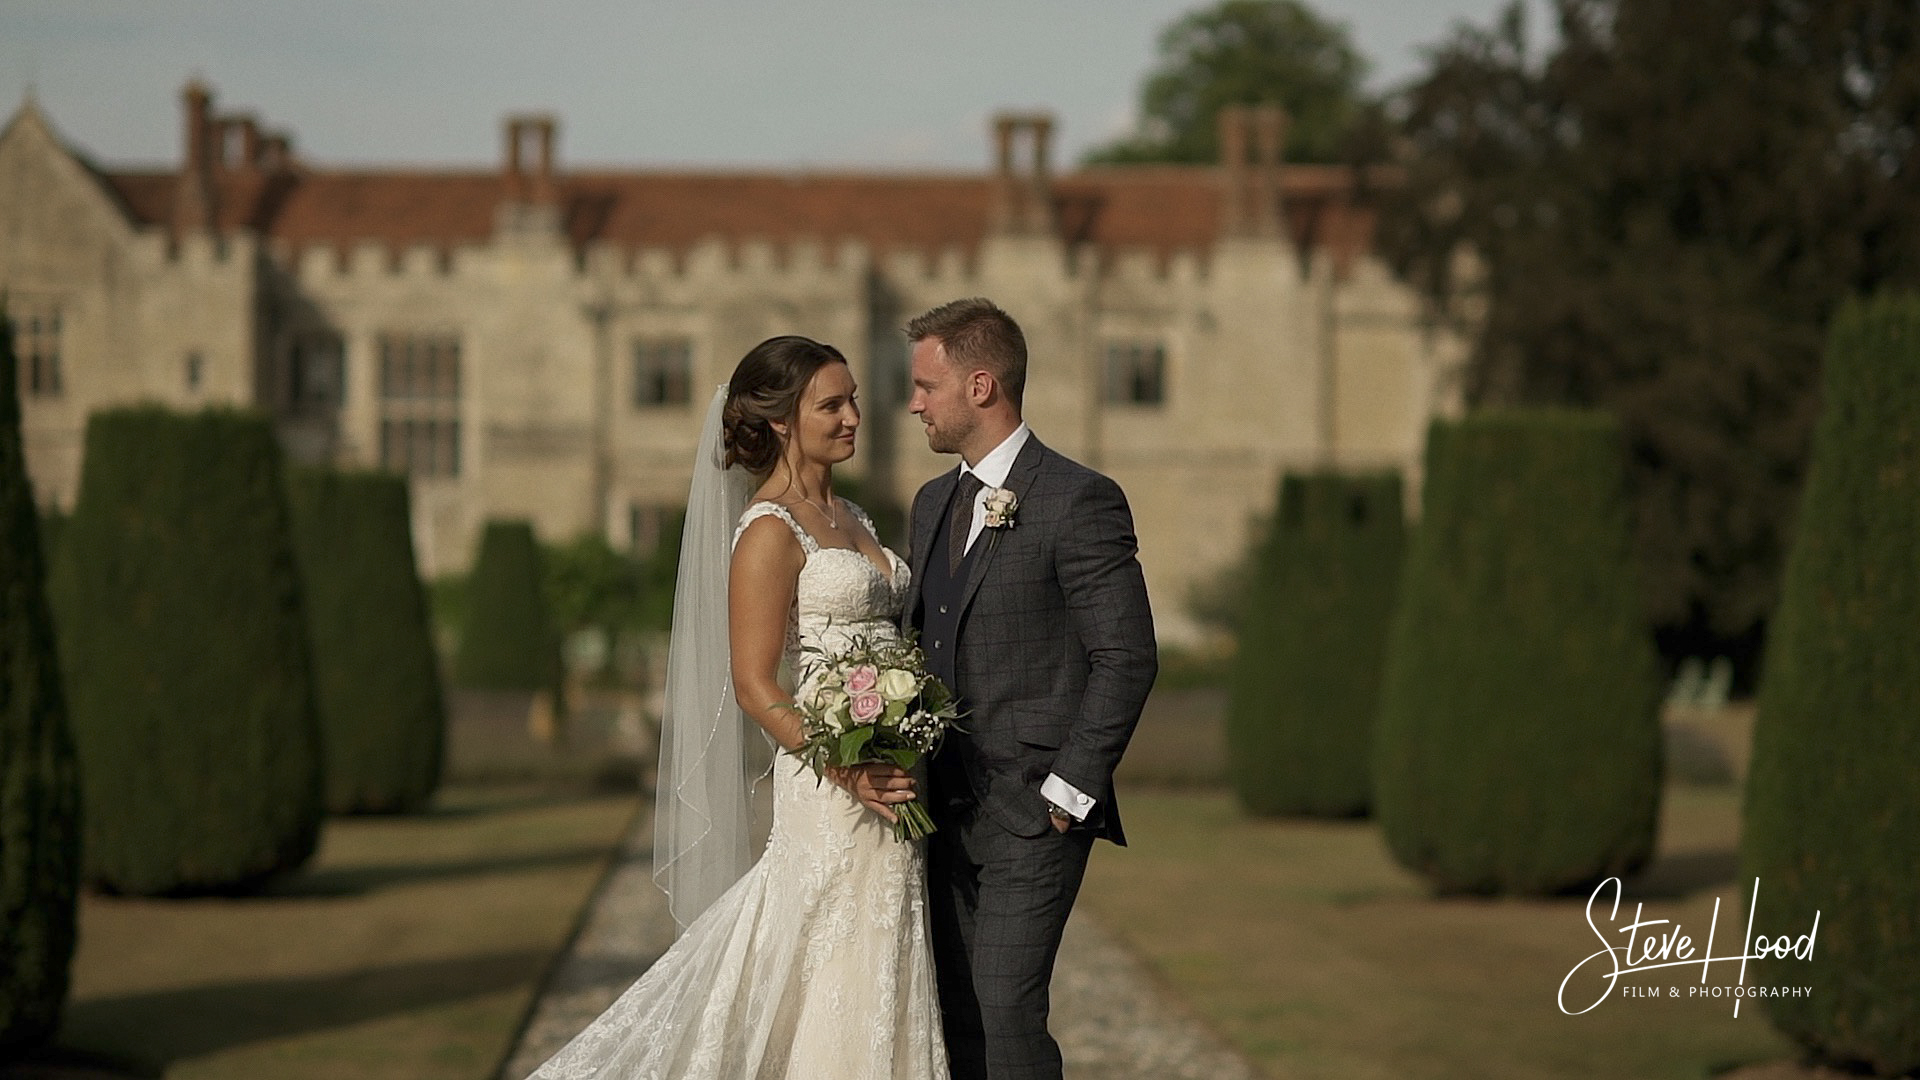 Suffolk Luxury wedding venue